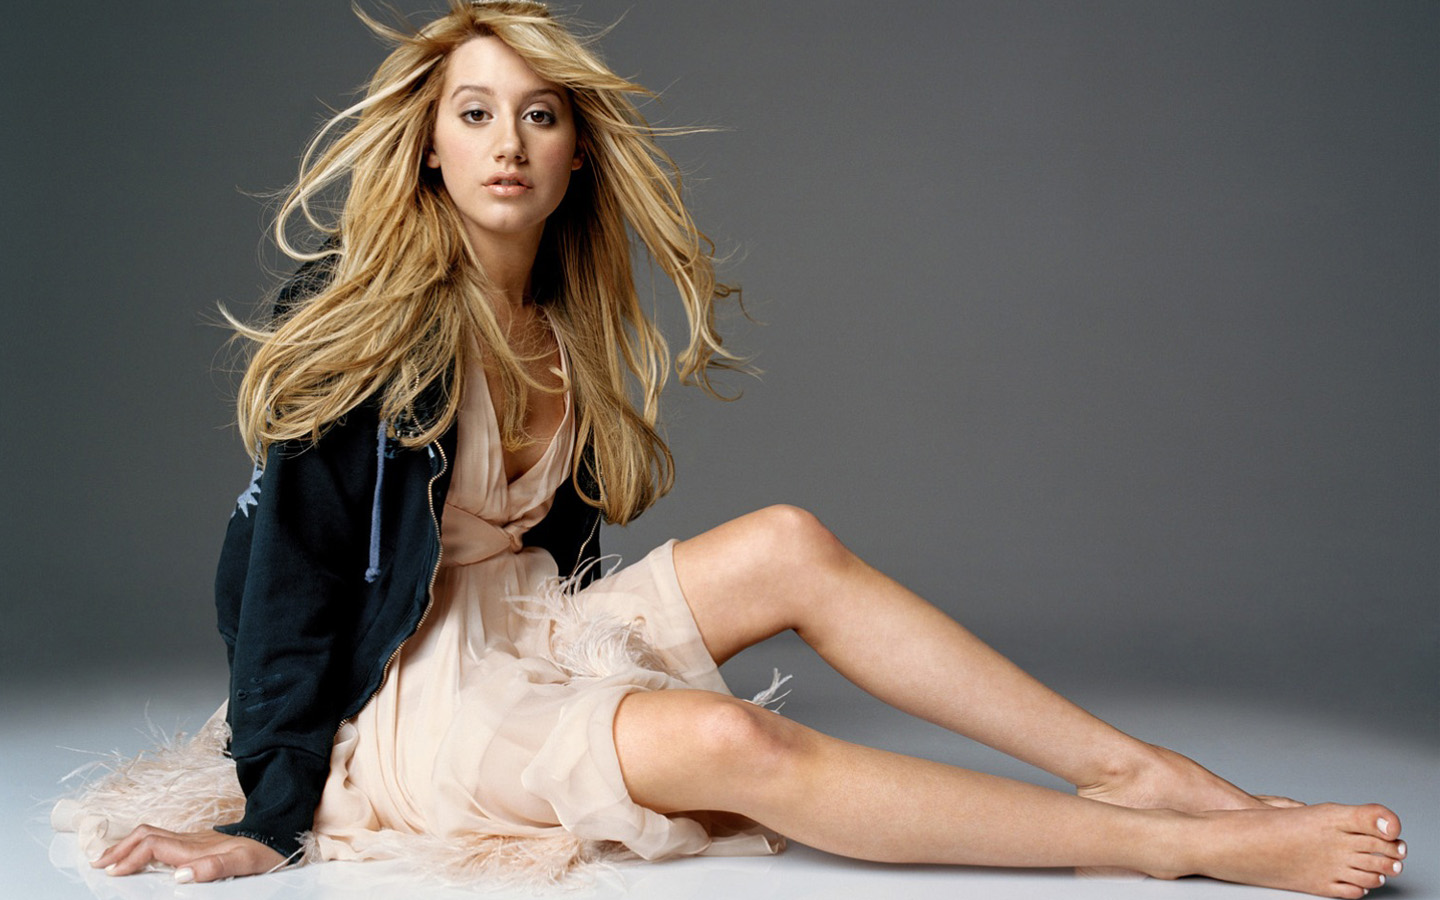 ashley tisdale images hd A8